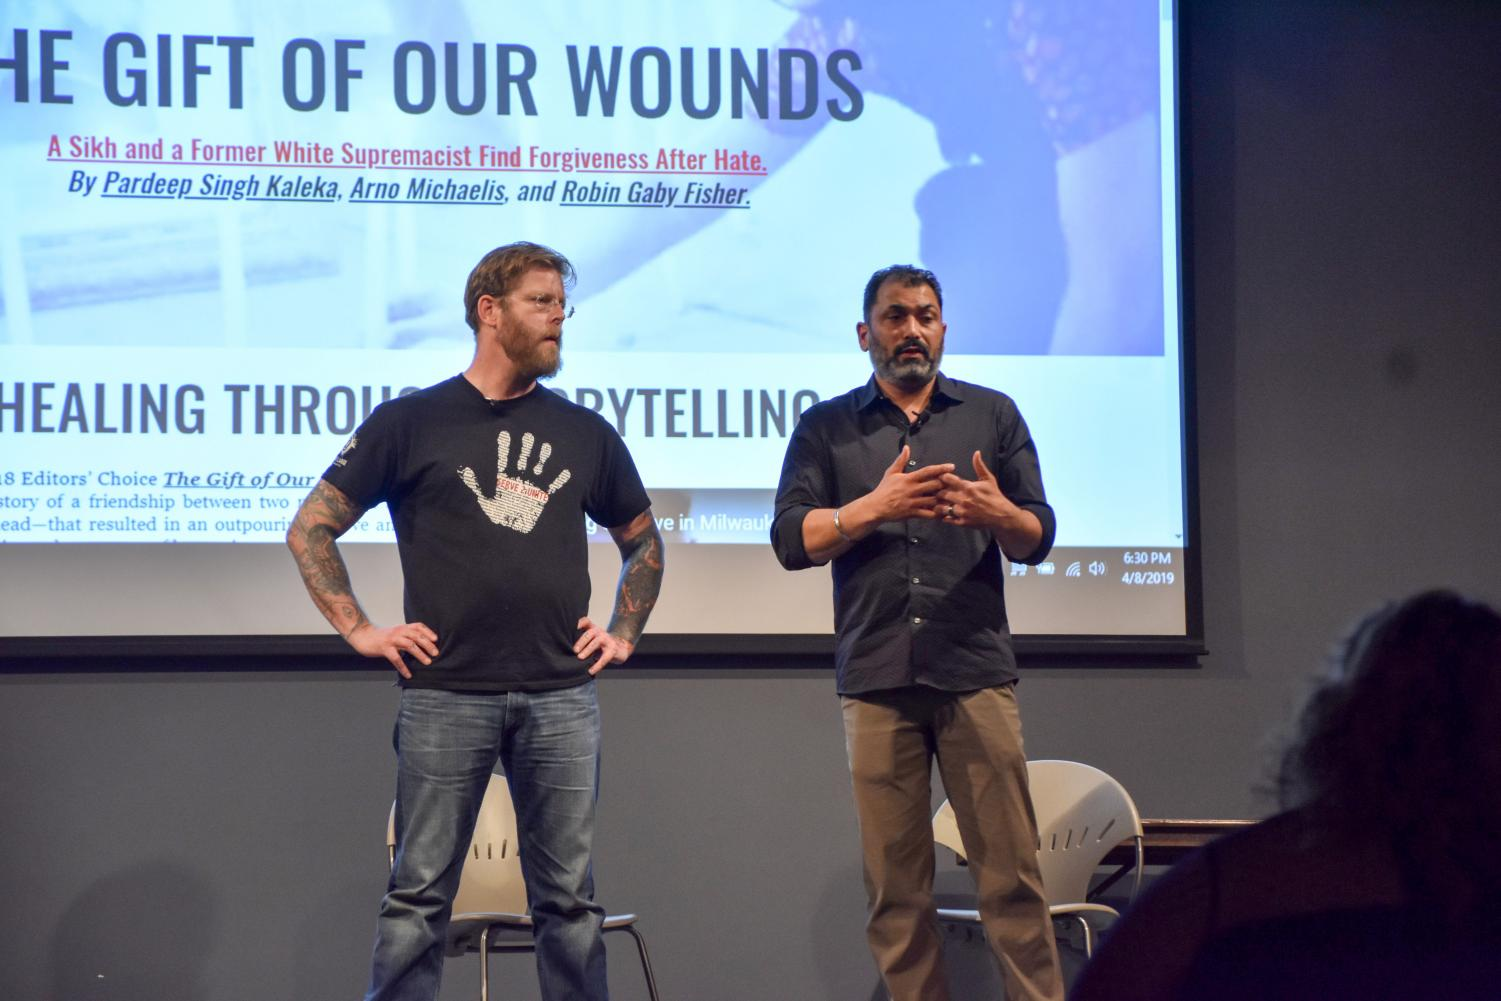 Arno Michaelis (left), a former white supremacist, and Pardeep Singh Kaleka, a witness of a hate crime, spoke on campus Monday.